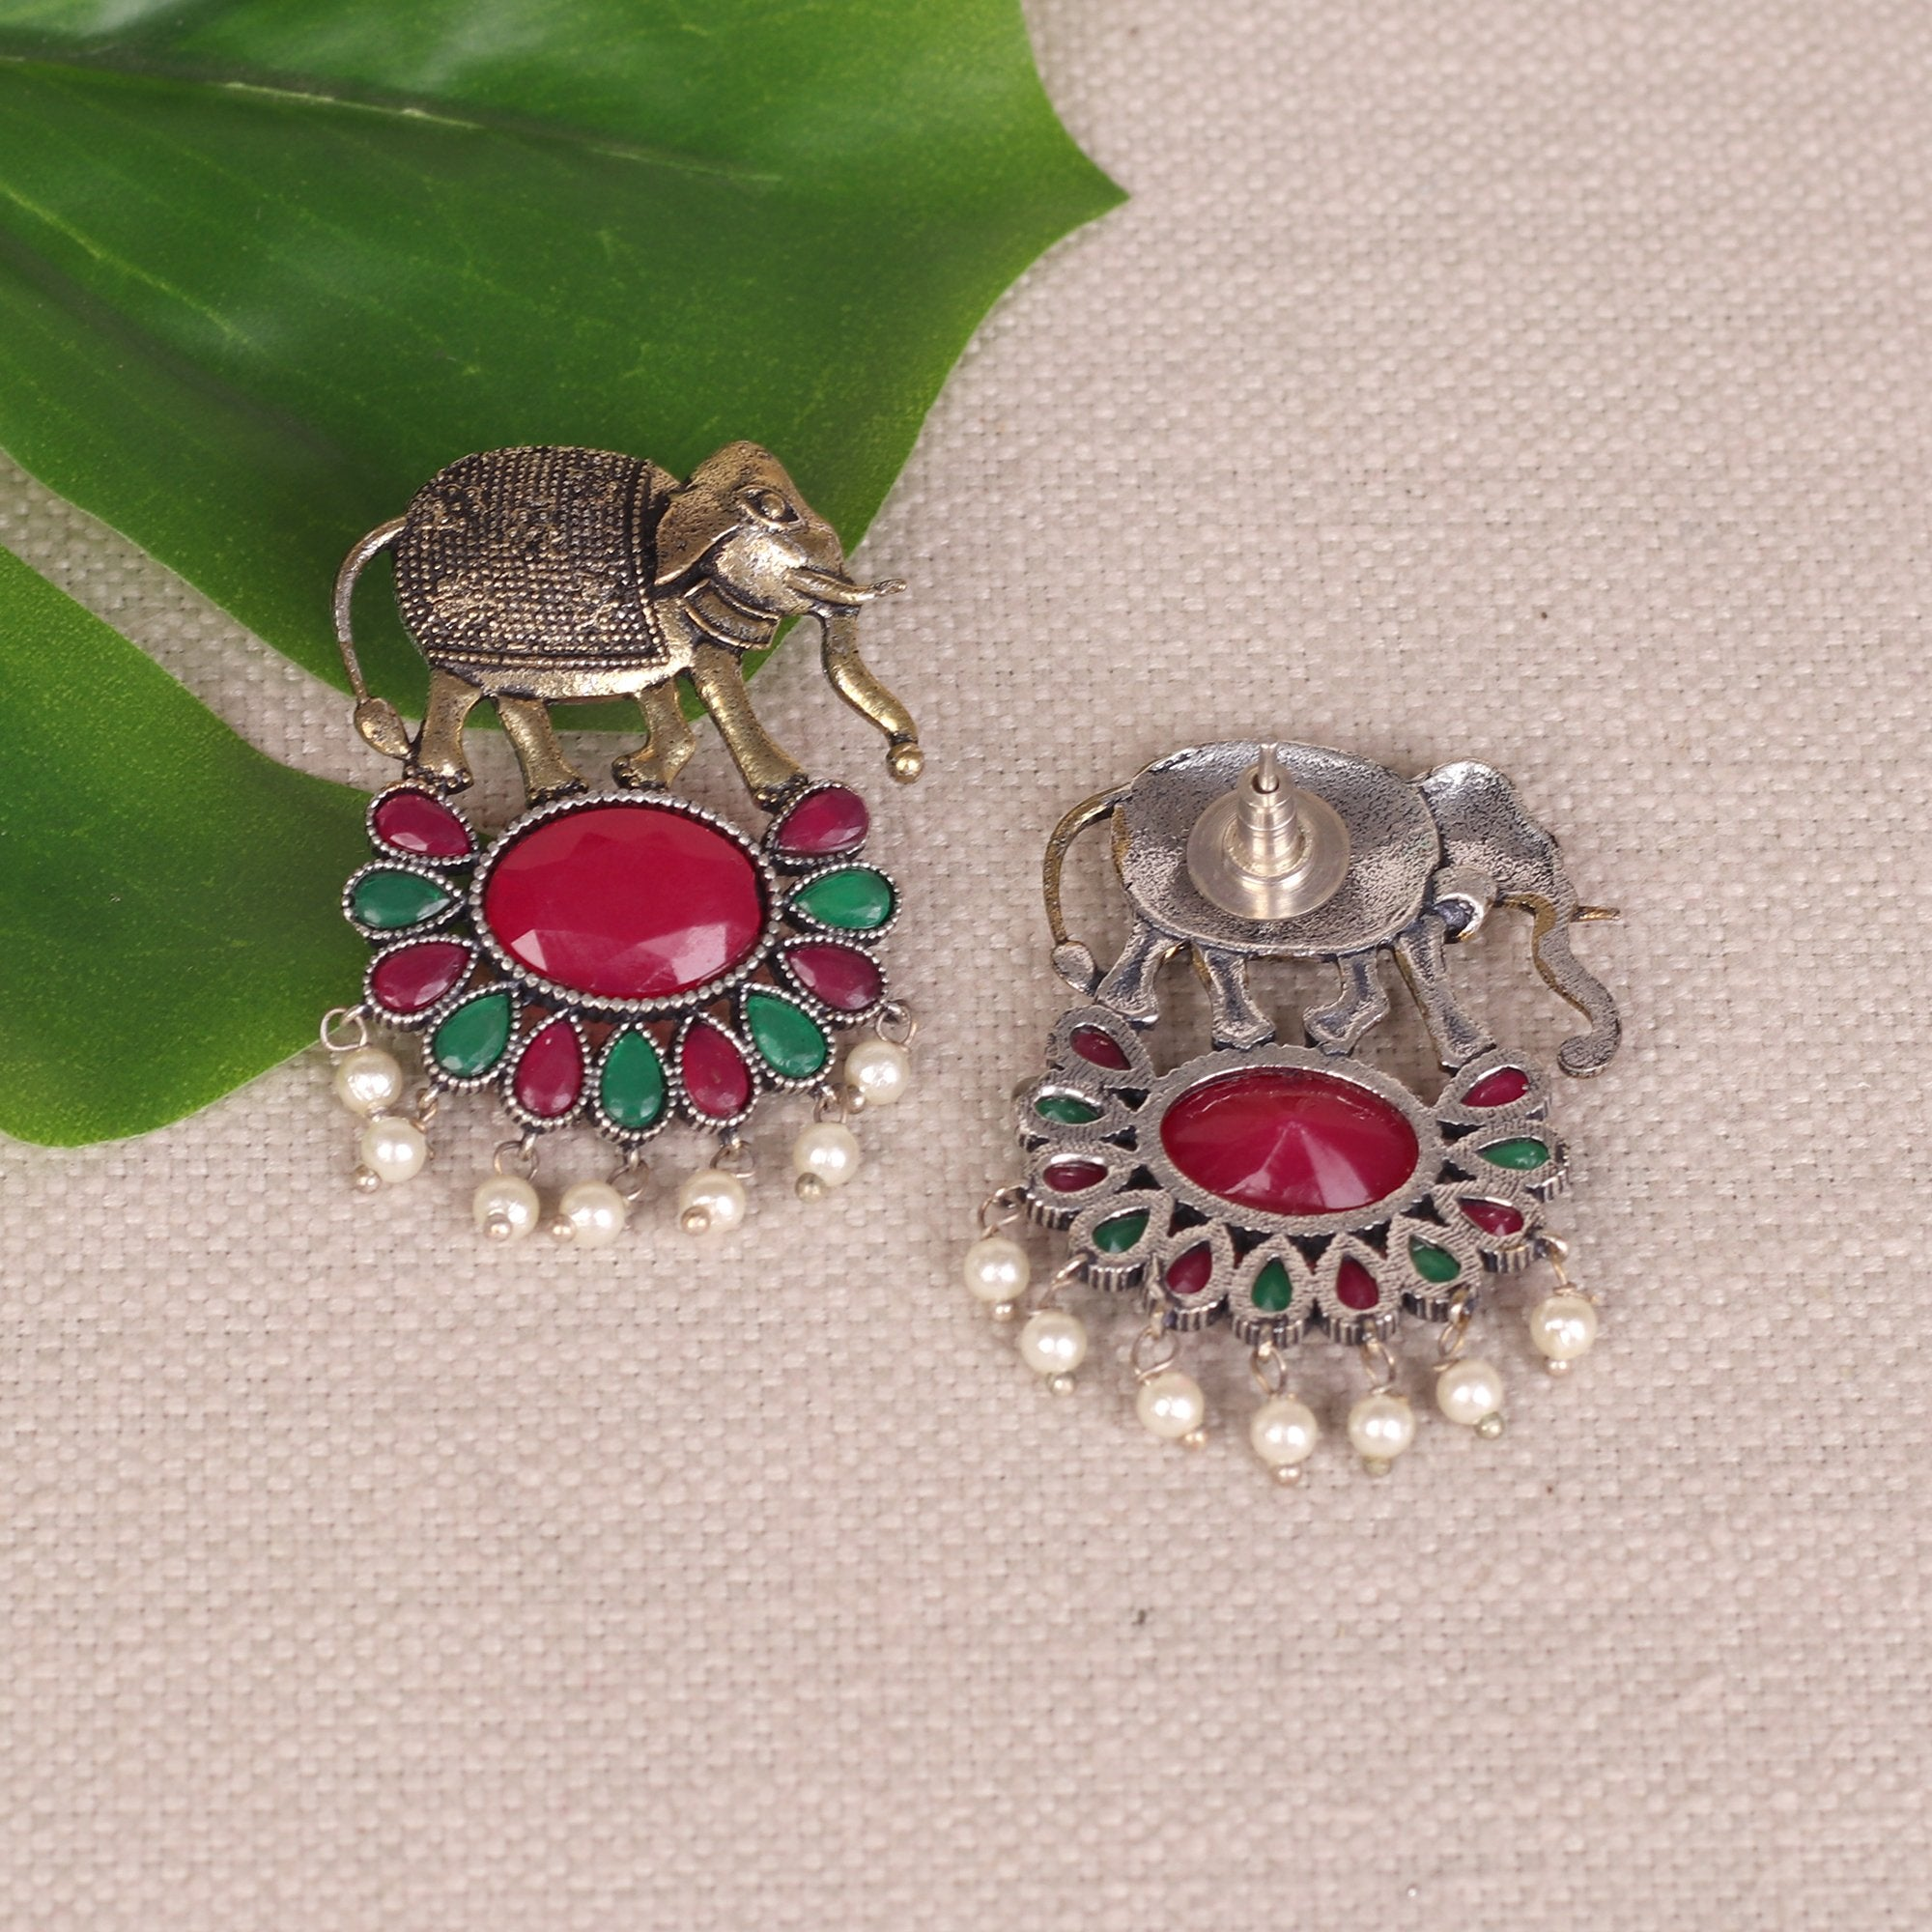 Elephant Motif Earings With Stones